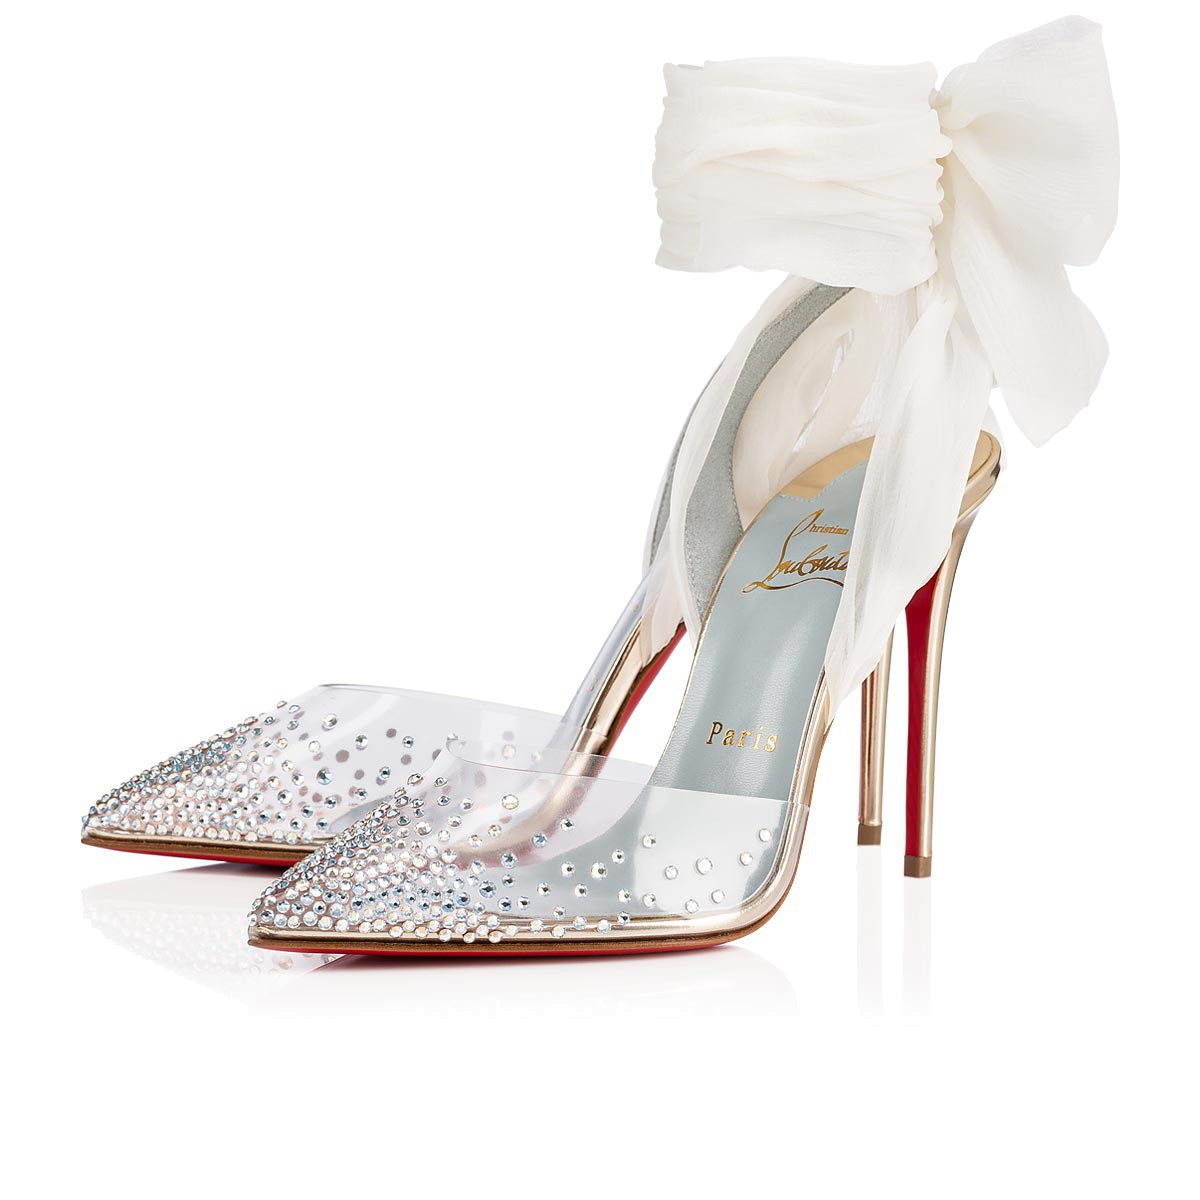 Bridal Shoes Expensive: Most Expensive Louboutin Shoes